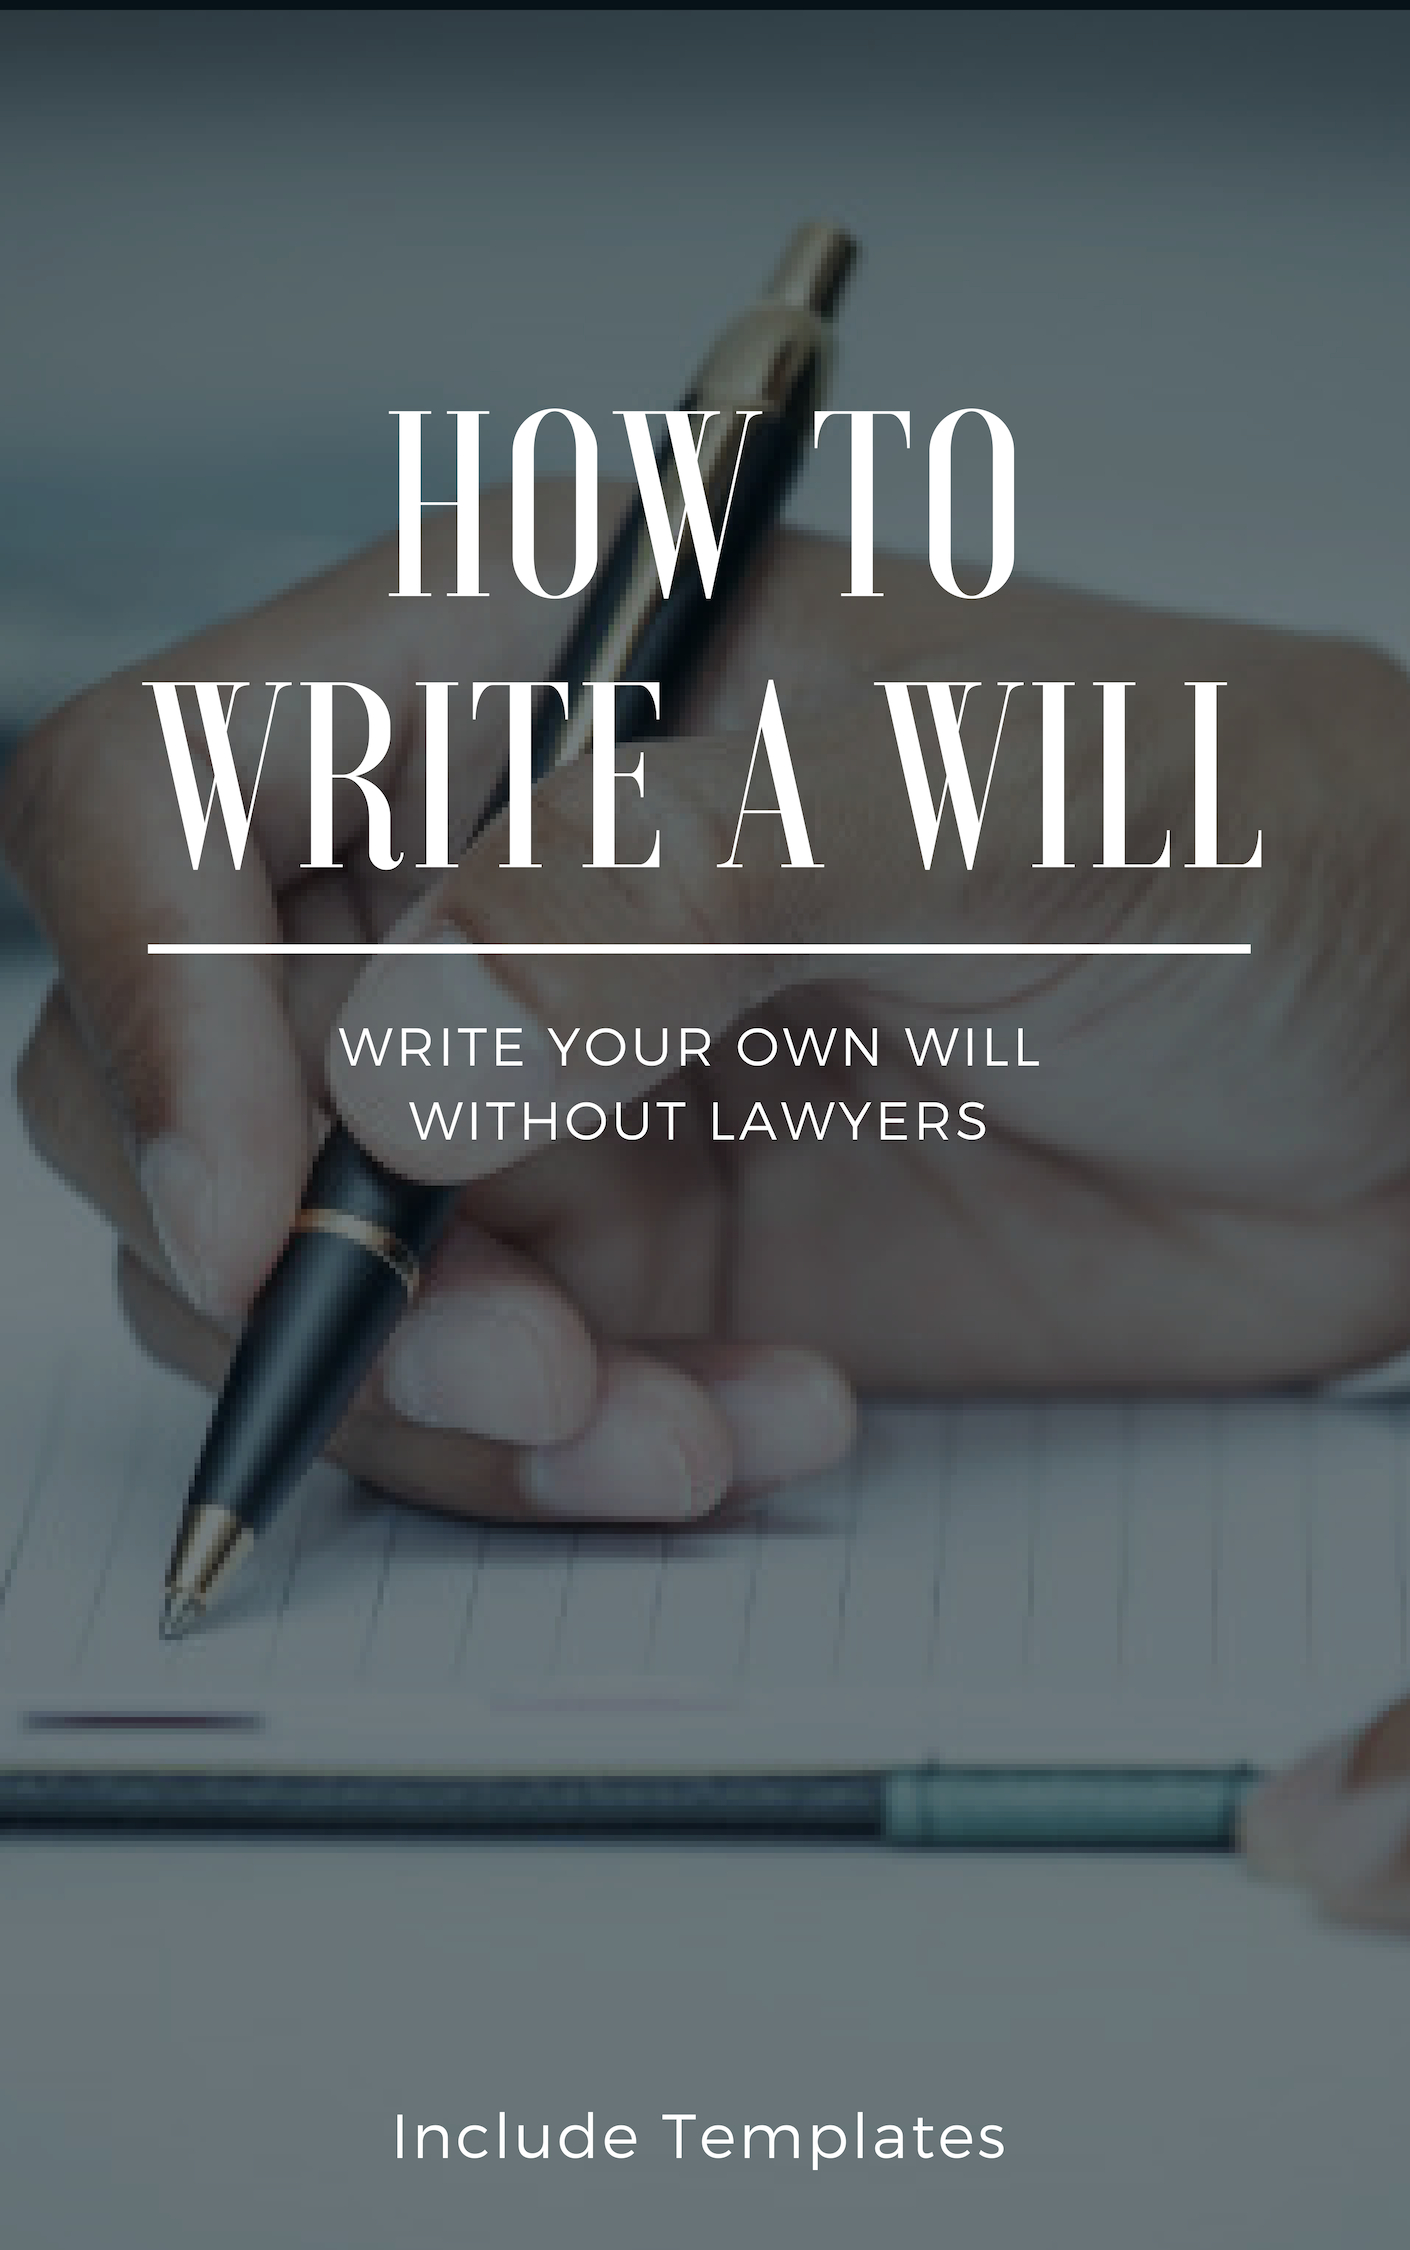 How To Write A Will: The Fastest And Easiest Guide To Write Your Own Will  Without Lawyers: Include Templates, The Key To Making A Right Testament  Step